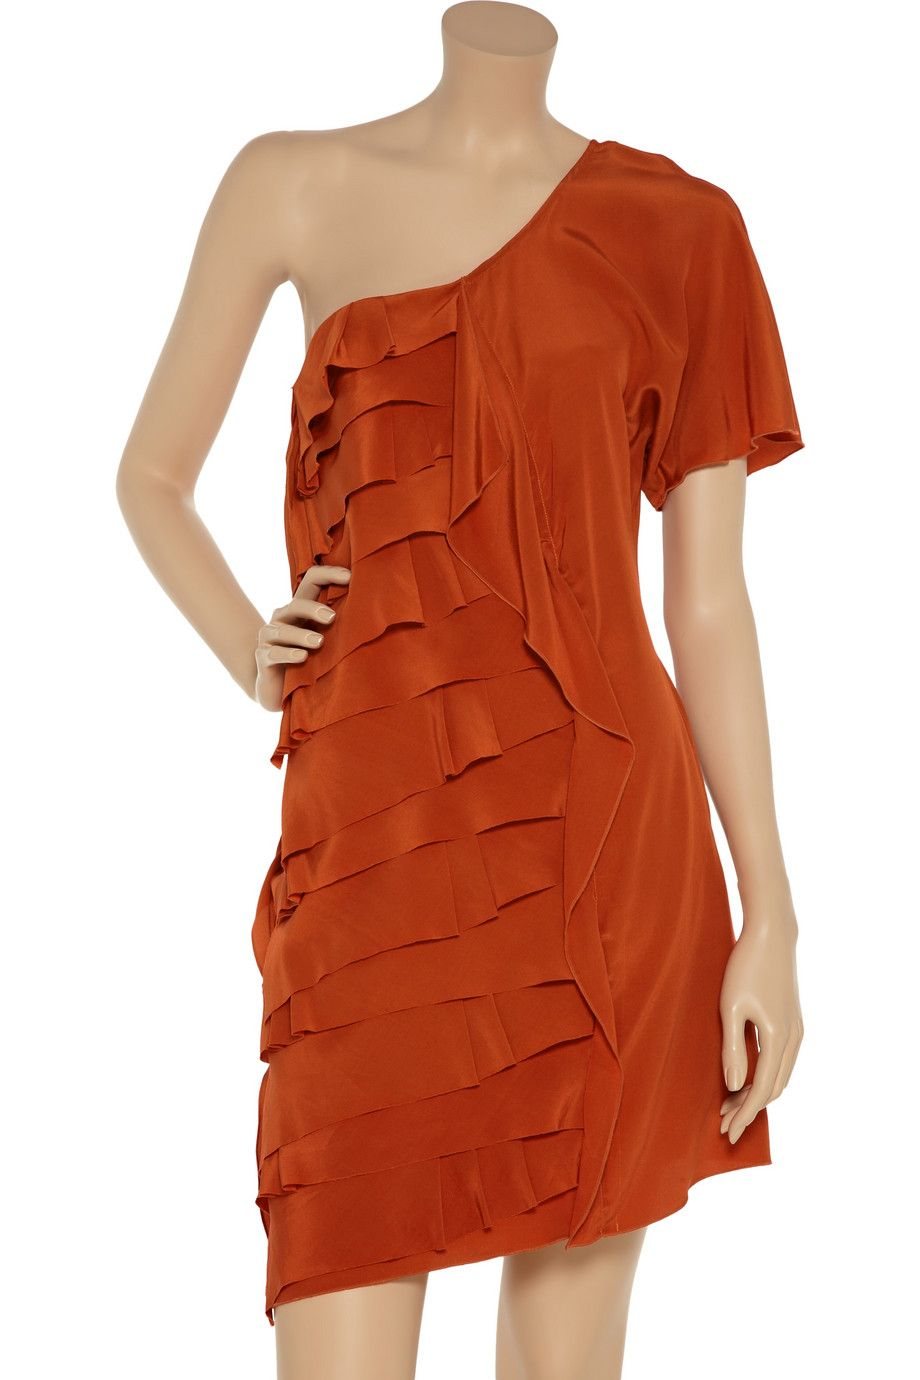 Sachin & Babi Francis ruffled crepe de chine dress - 88% Off Now at THE OUTNET